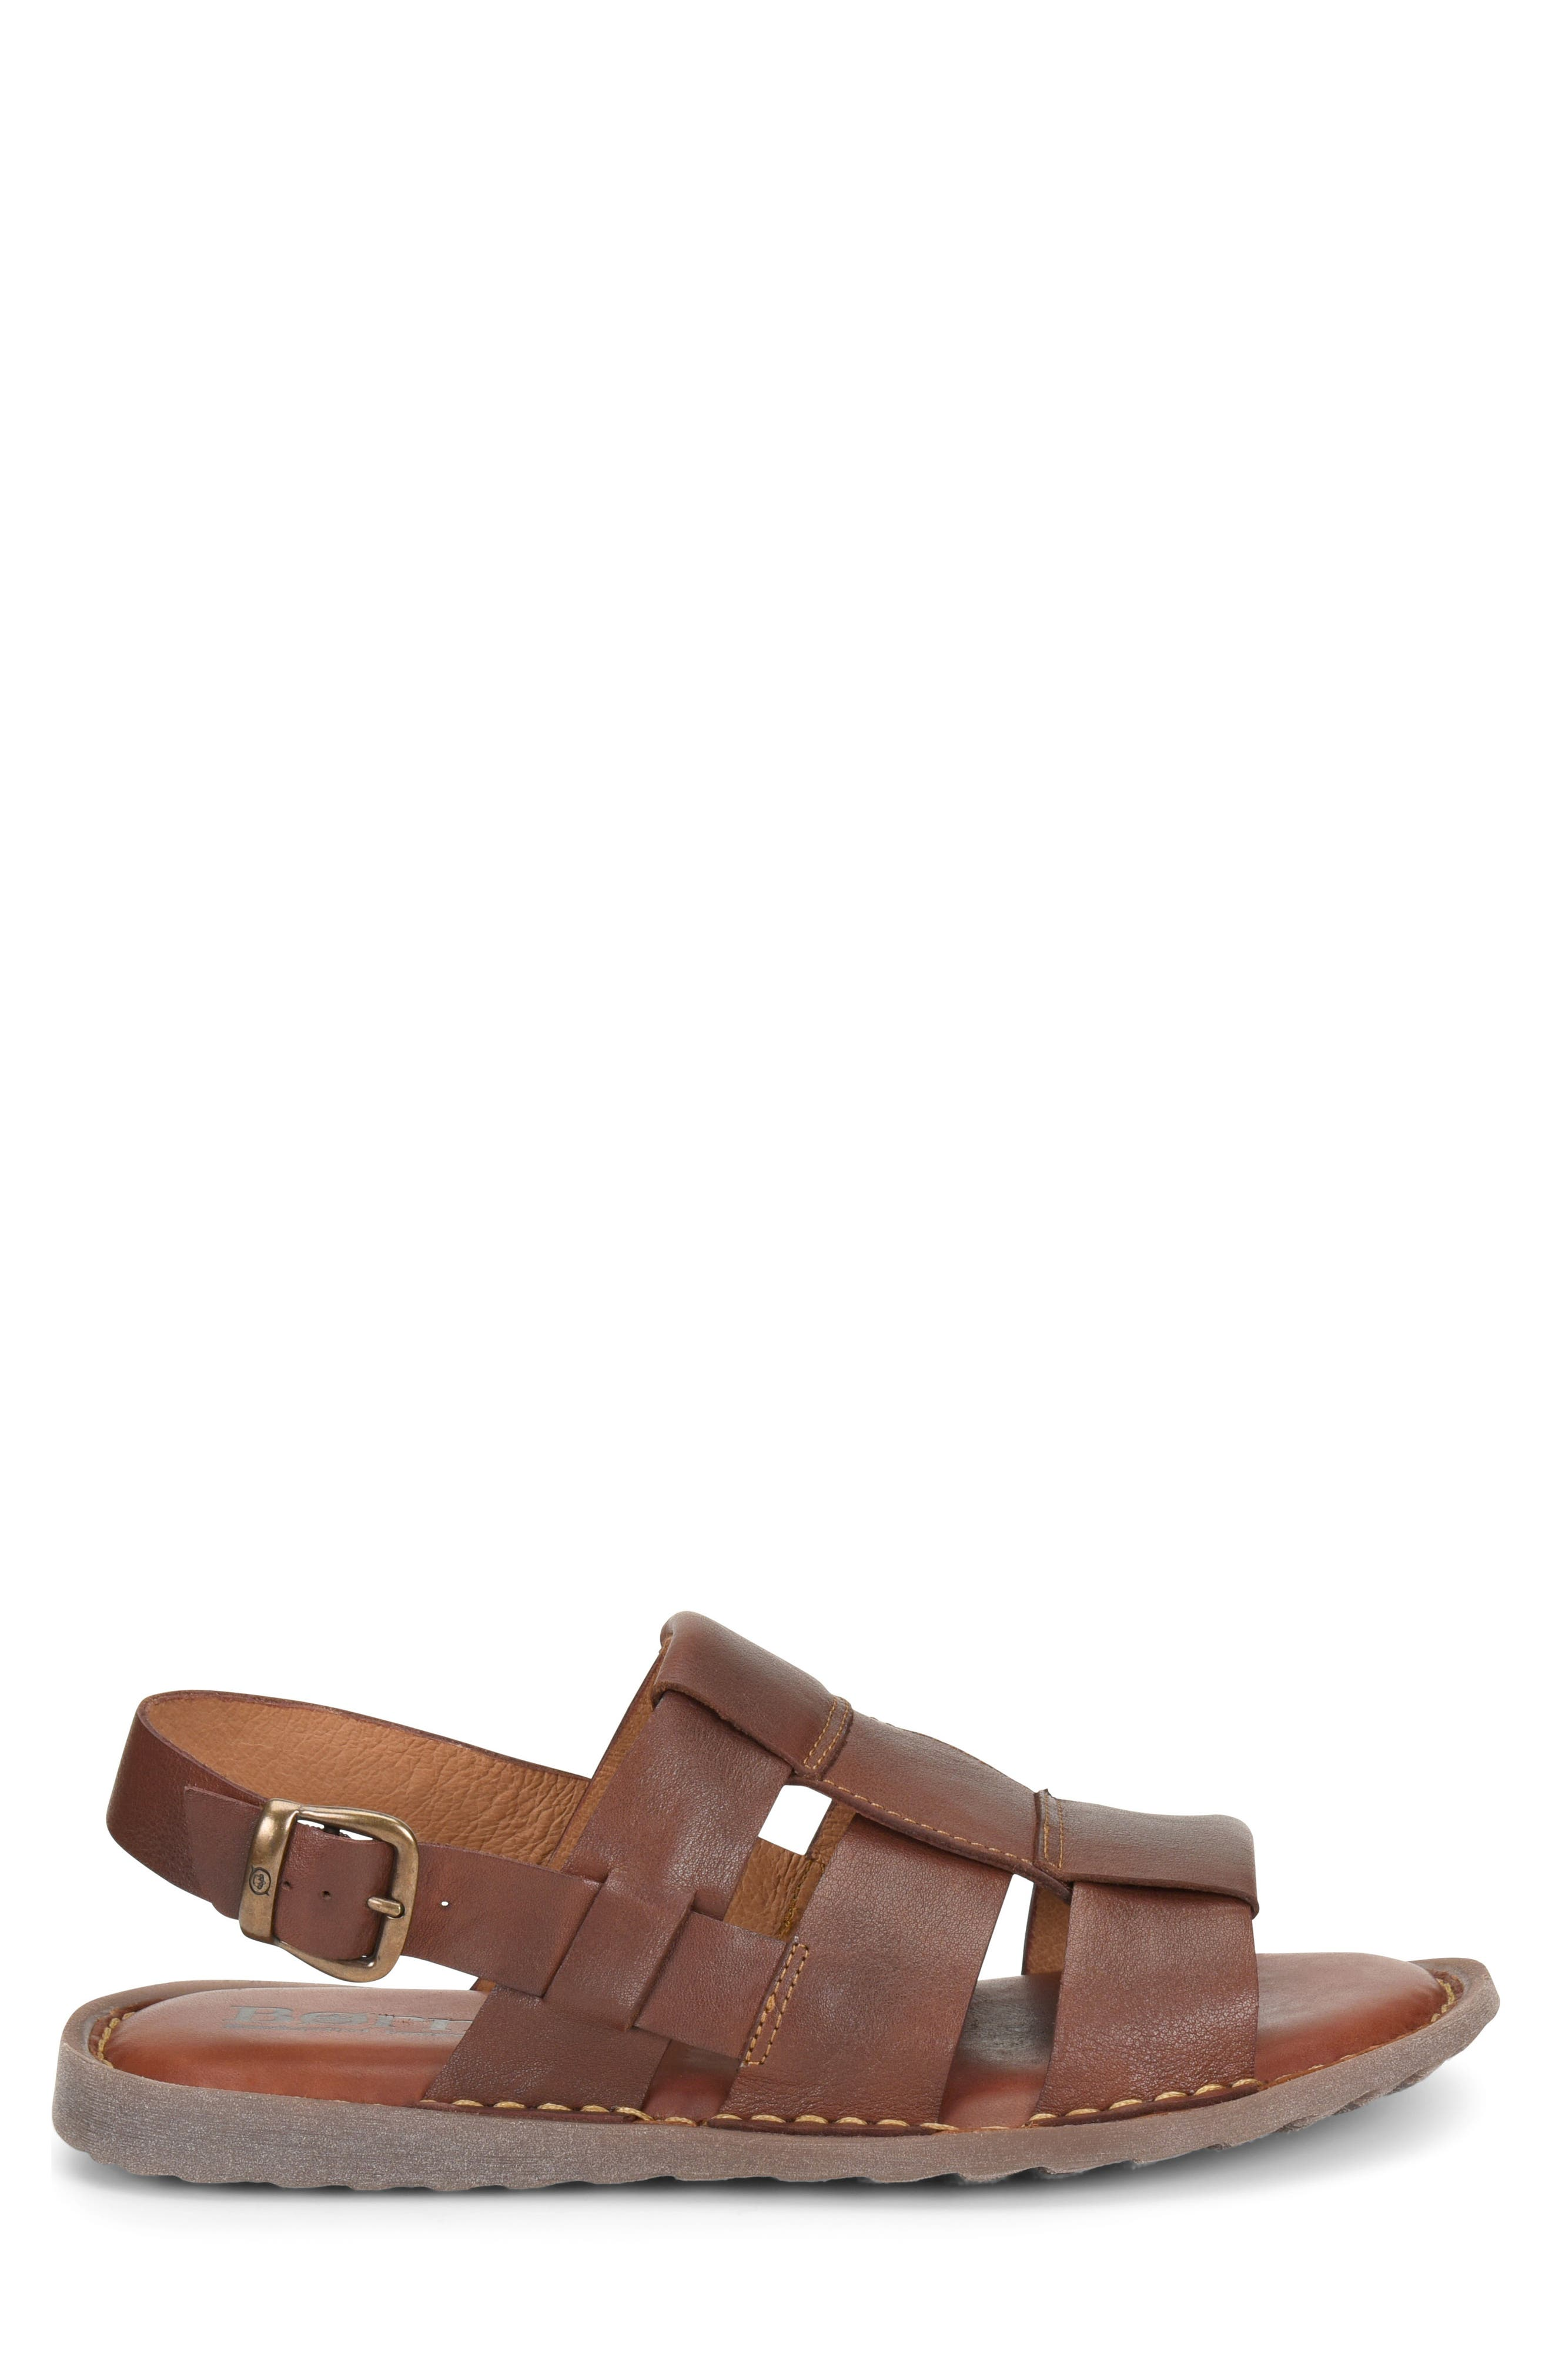 Surf Fisherman Sandal,                             Alternate thumbnail 3, color,                             BROWN LEATHER